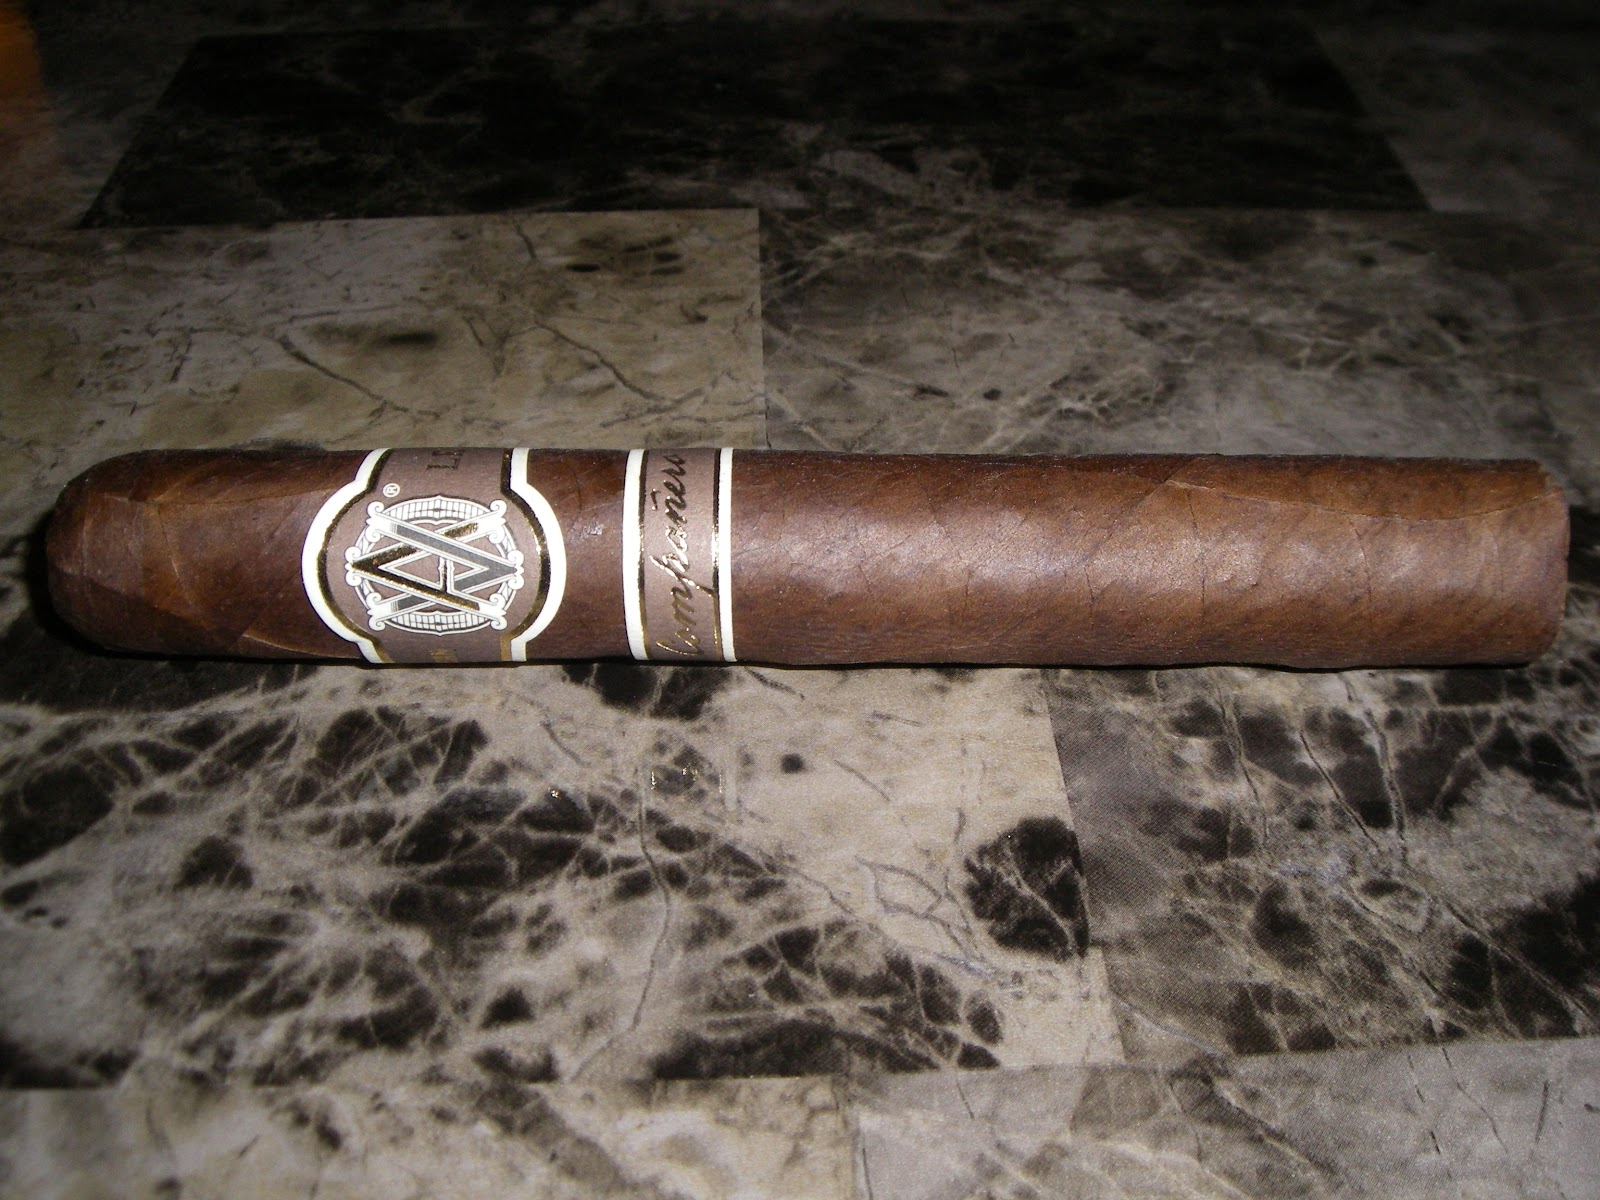 Cigar Review: Avo Limited Edition 2009 Compañero (Avo LE 09)